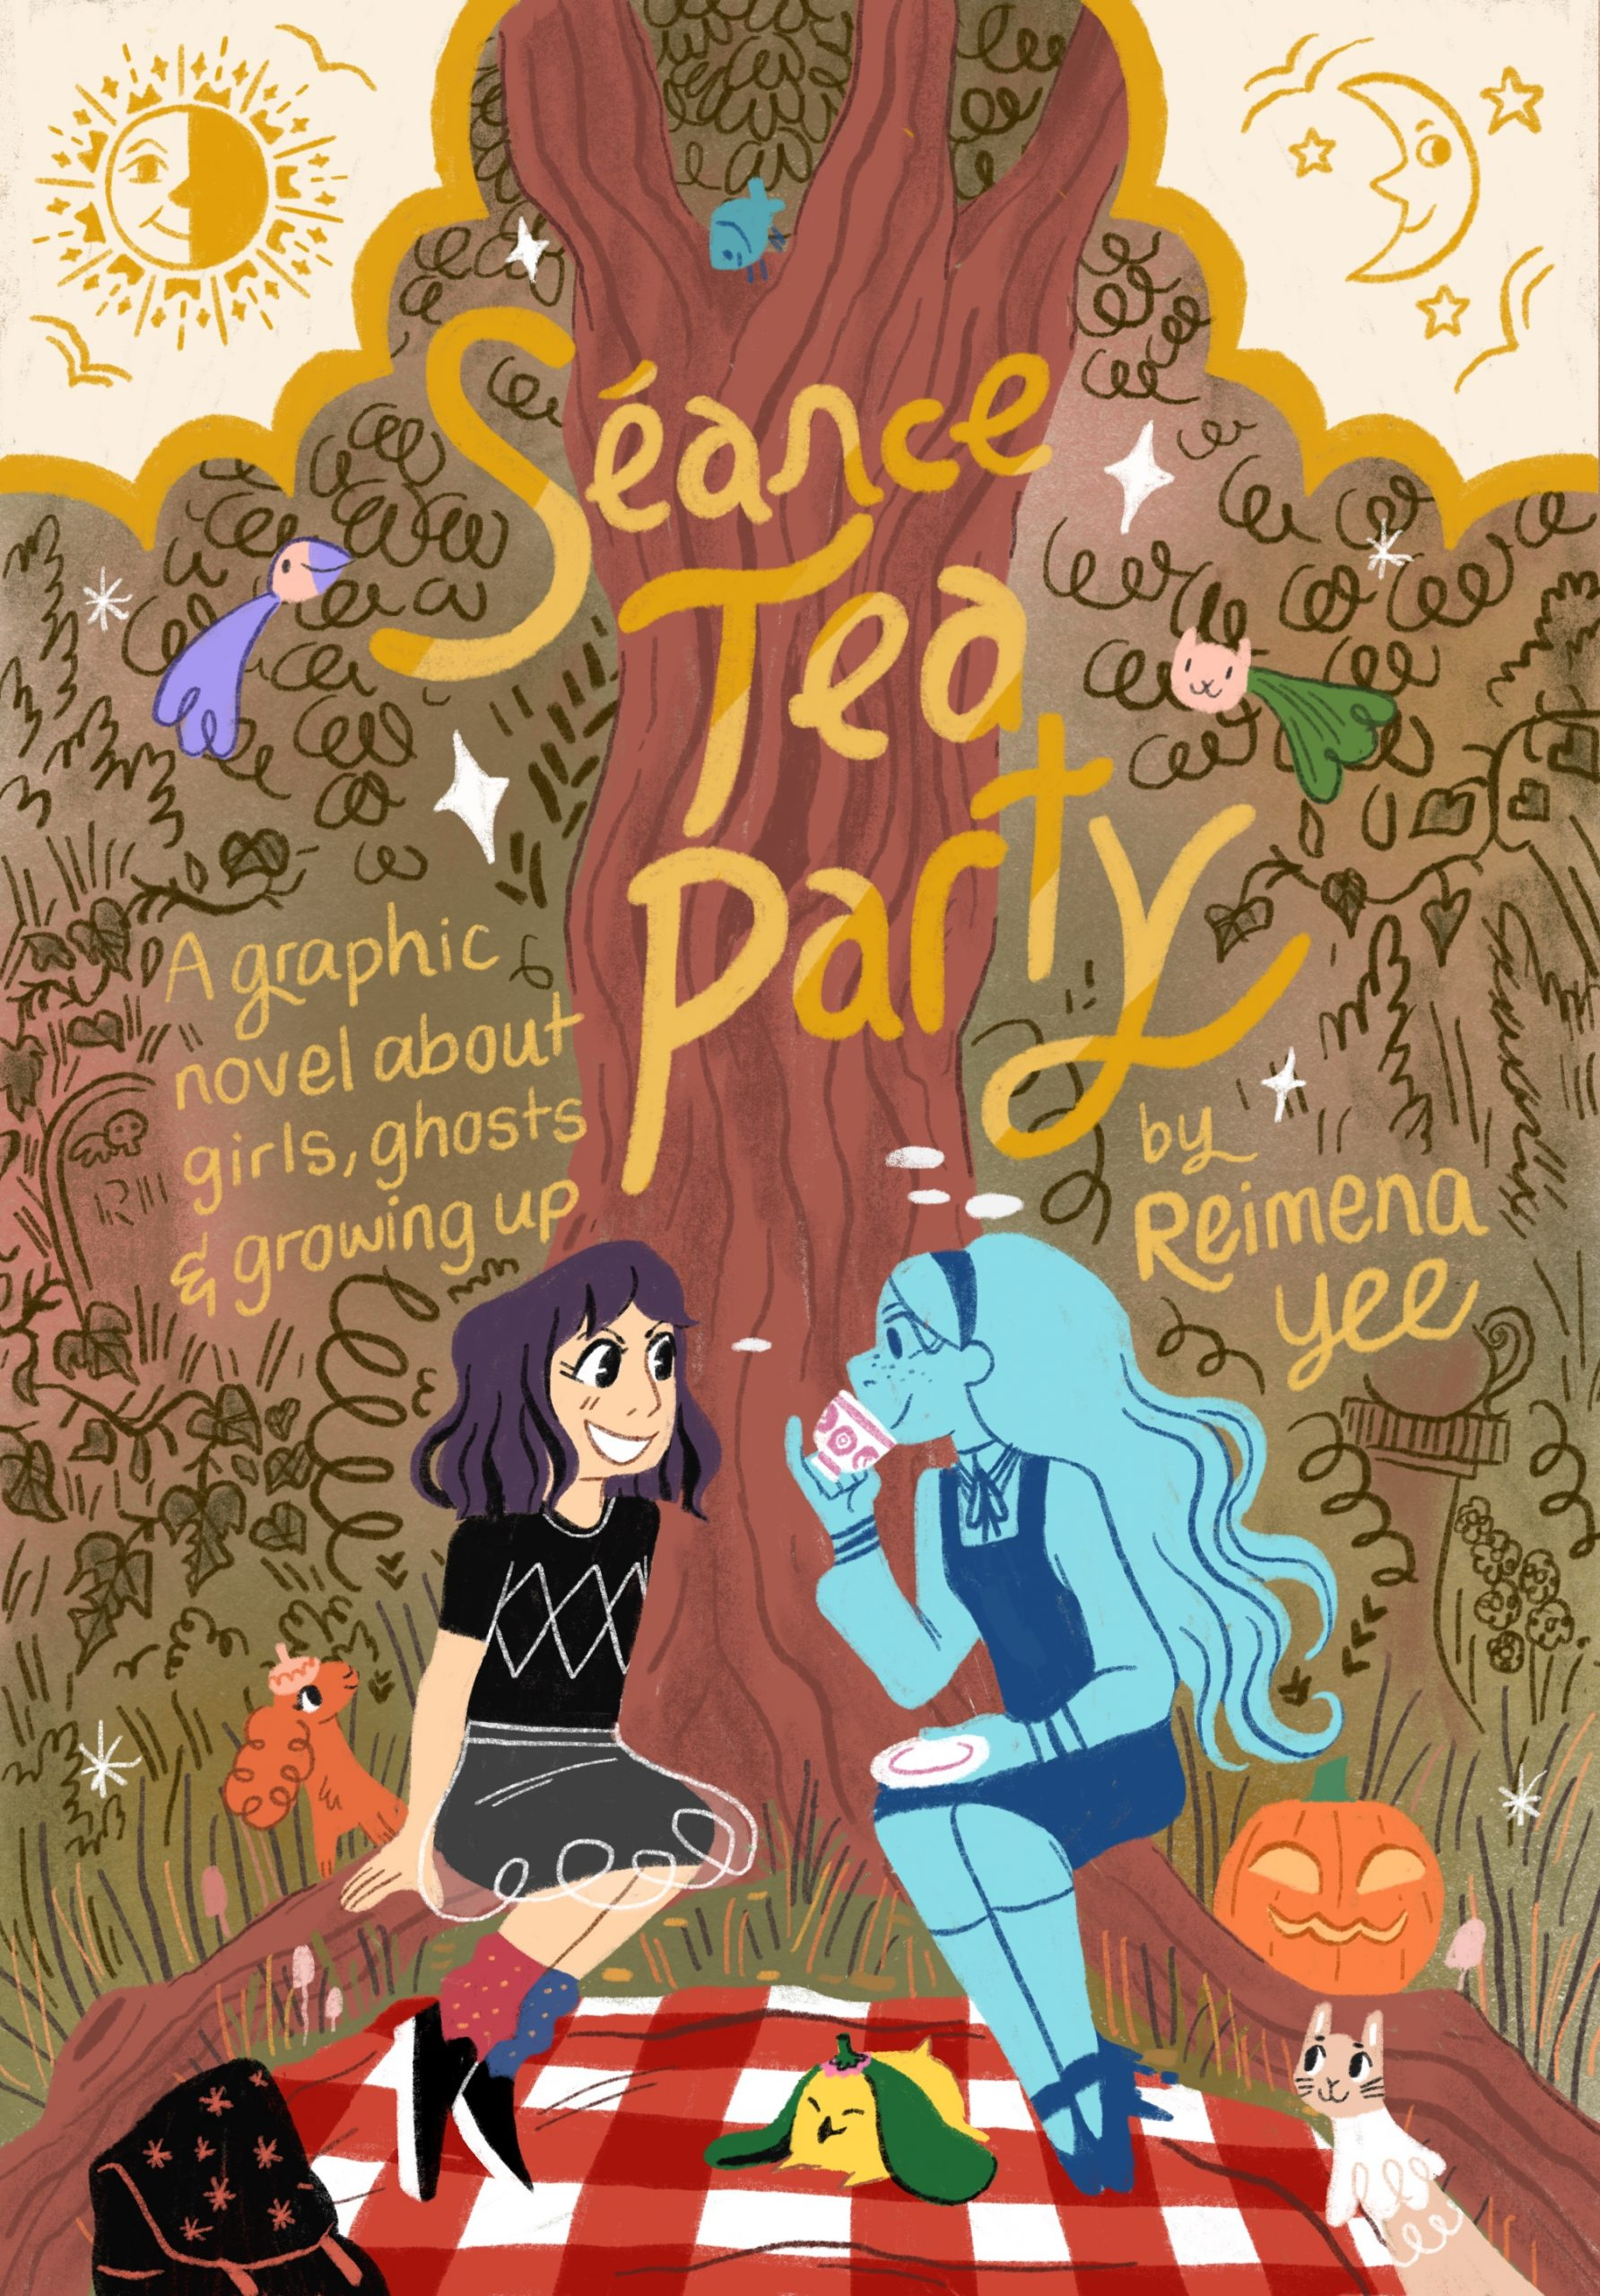 Poster for Seance Tea Party